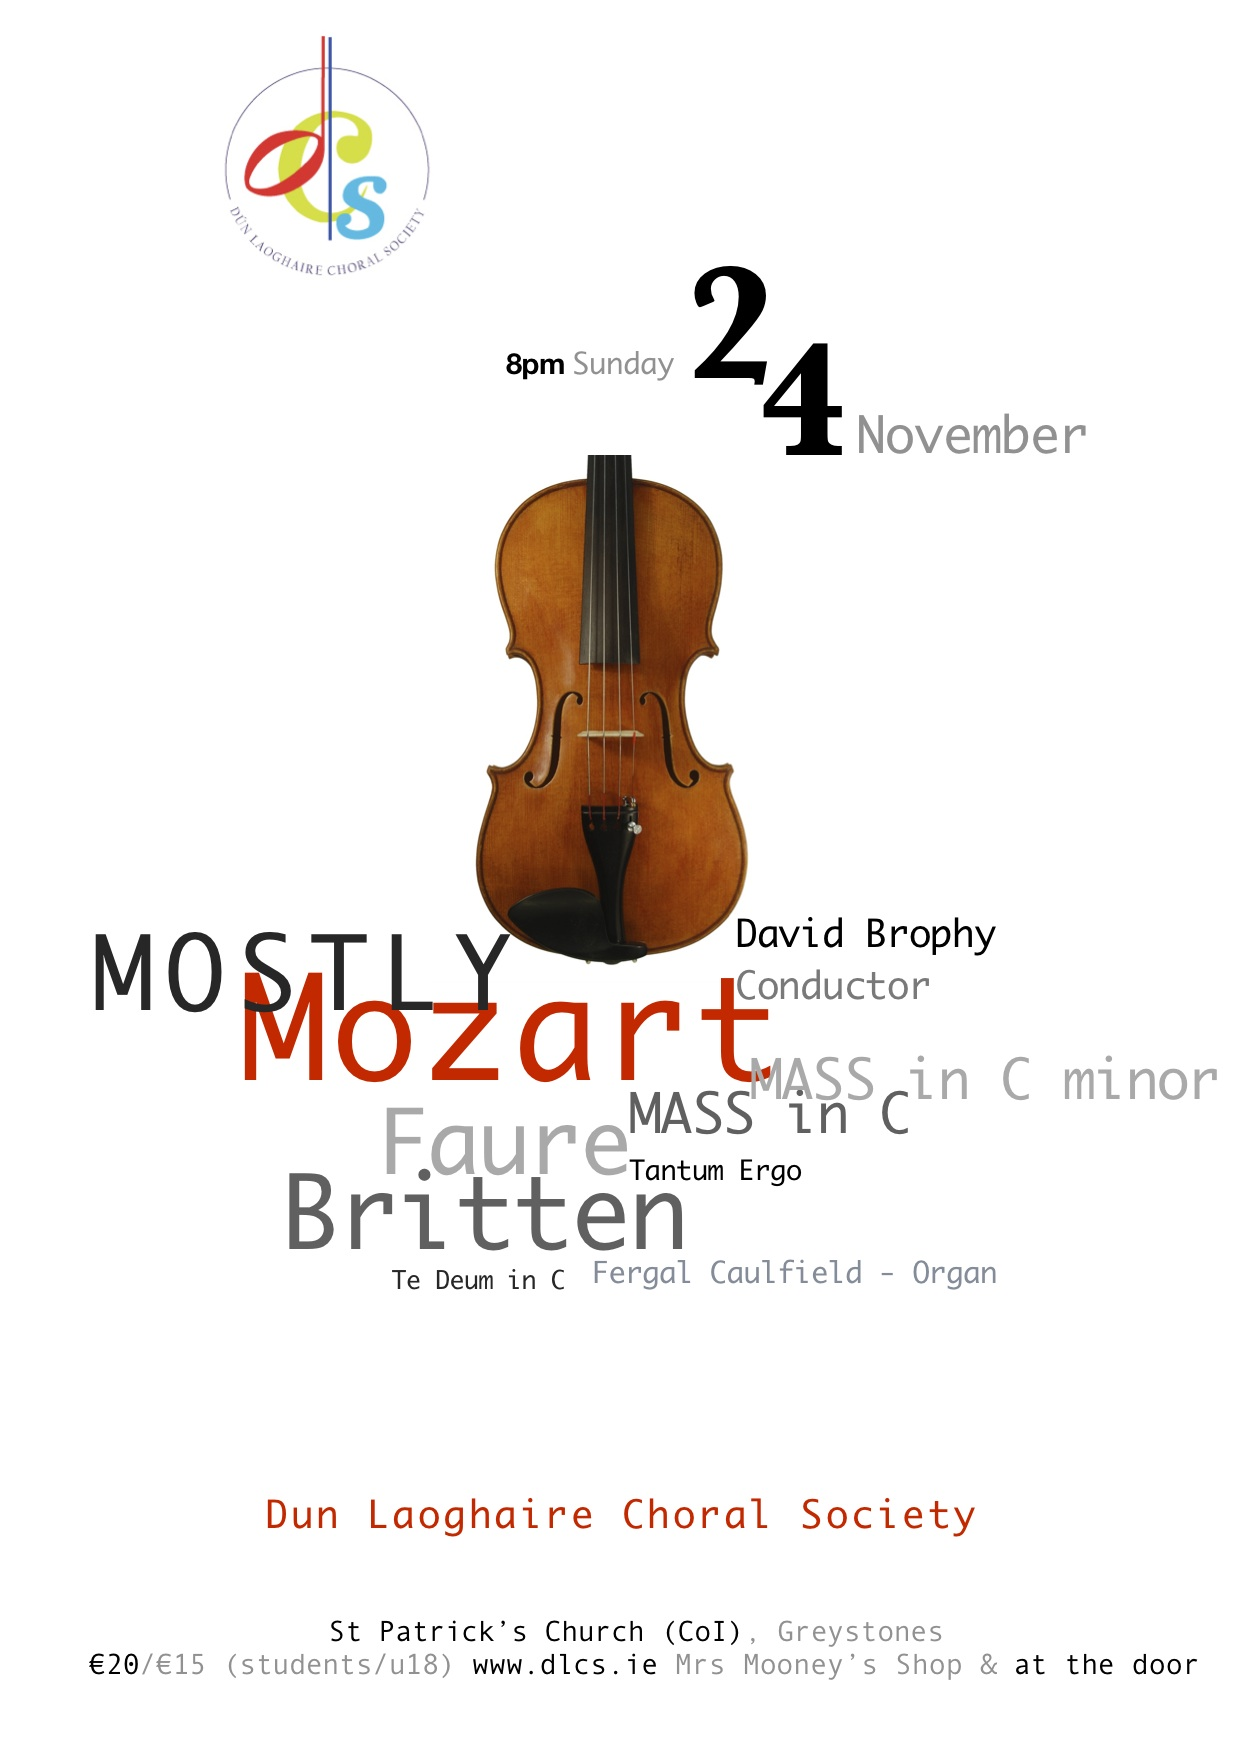 """""""Mostly Mozart"""" Concert by Dun Laoghaire Choral Society, 24 November 2013"""